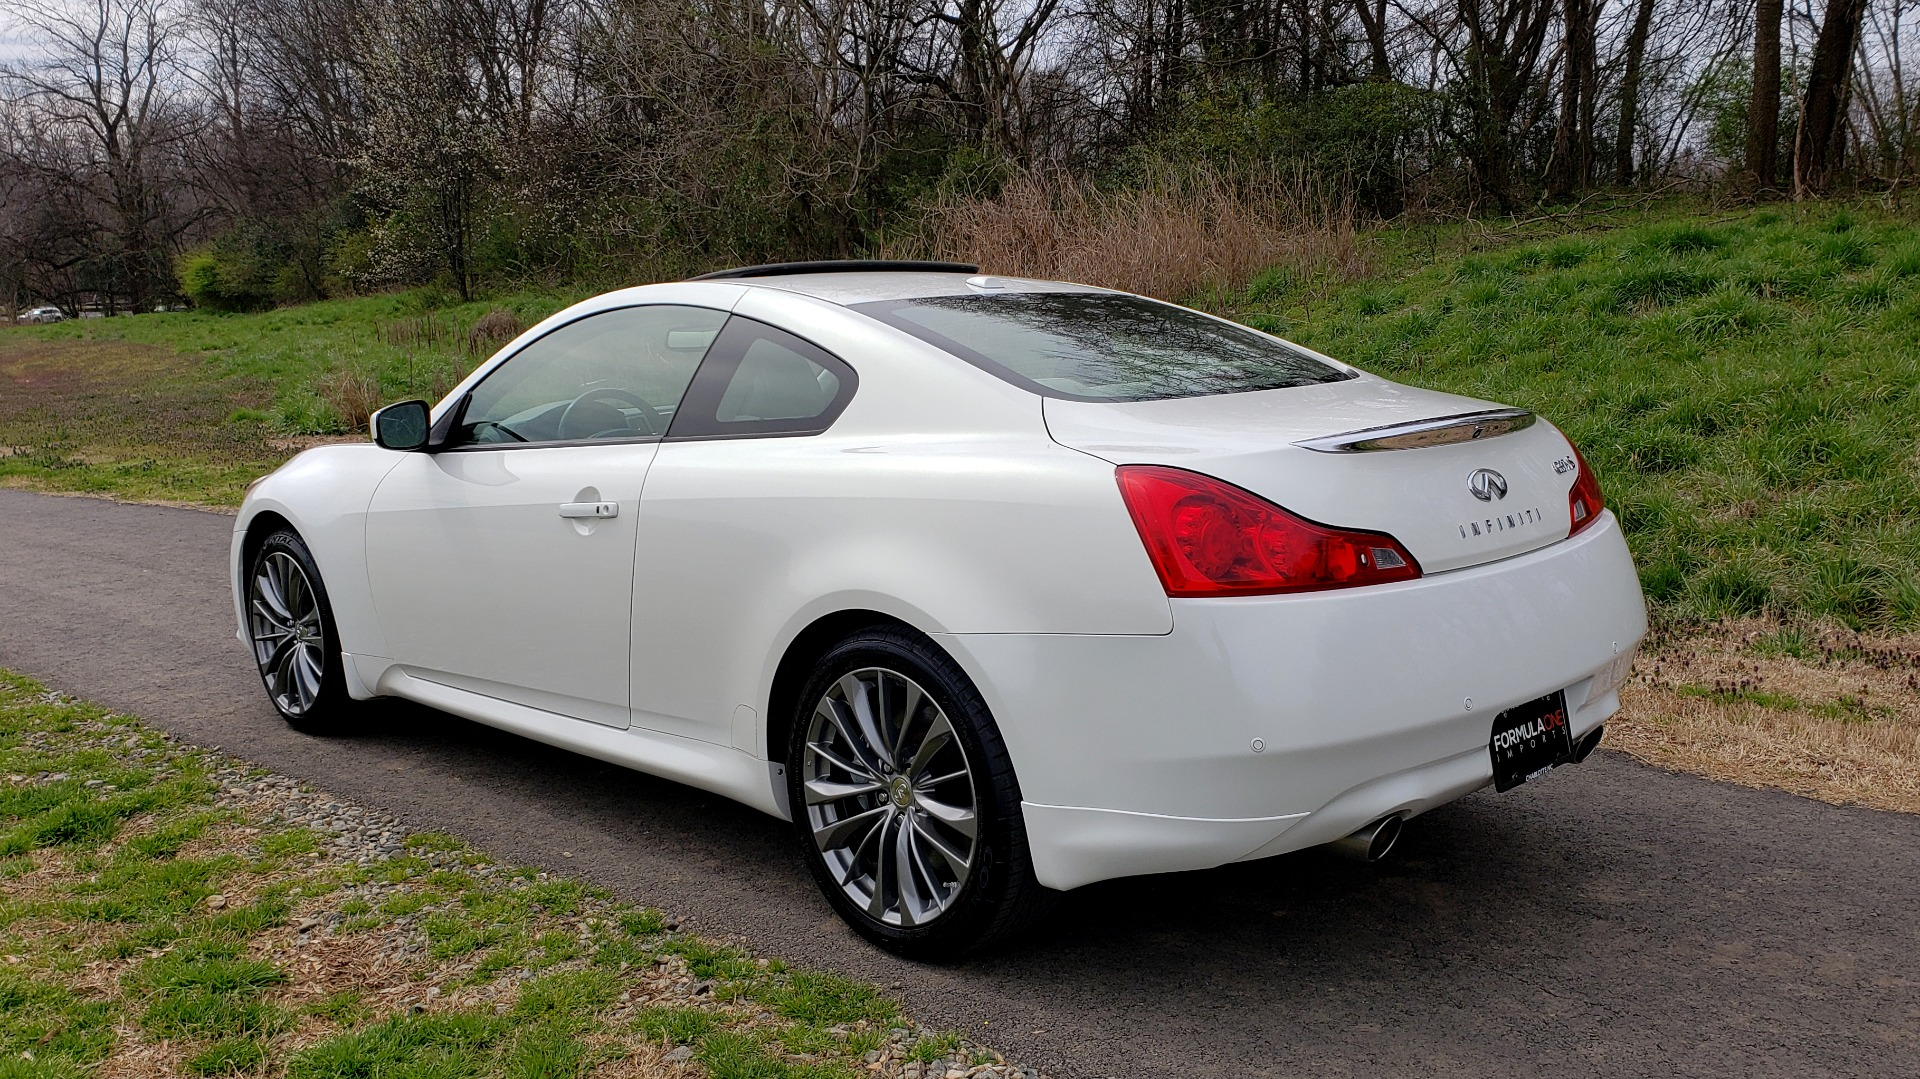 Used 2012 Infiniti G37 Coupe X AWD PREMIUM SPORT PKG / NAV / SUNROOF / REARVIEW for sale Sold at Formula Imports in Charlotte NC 28227 3